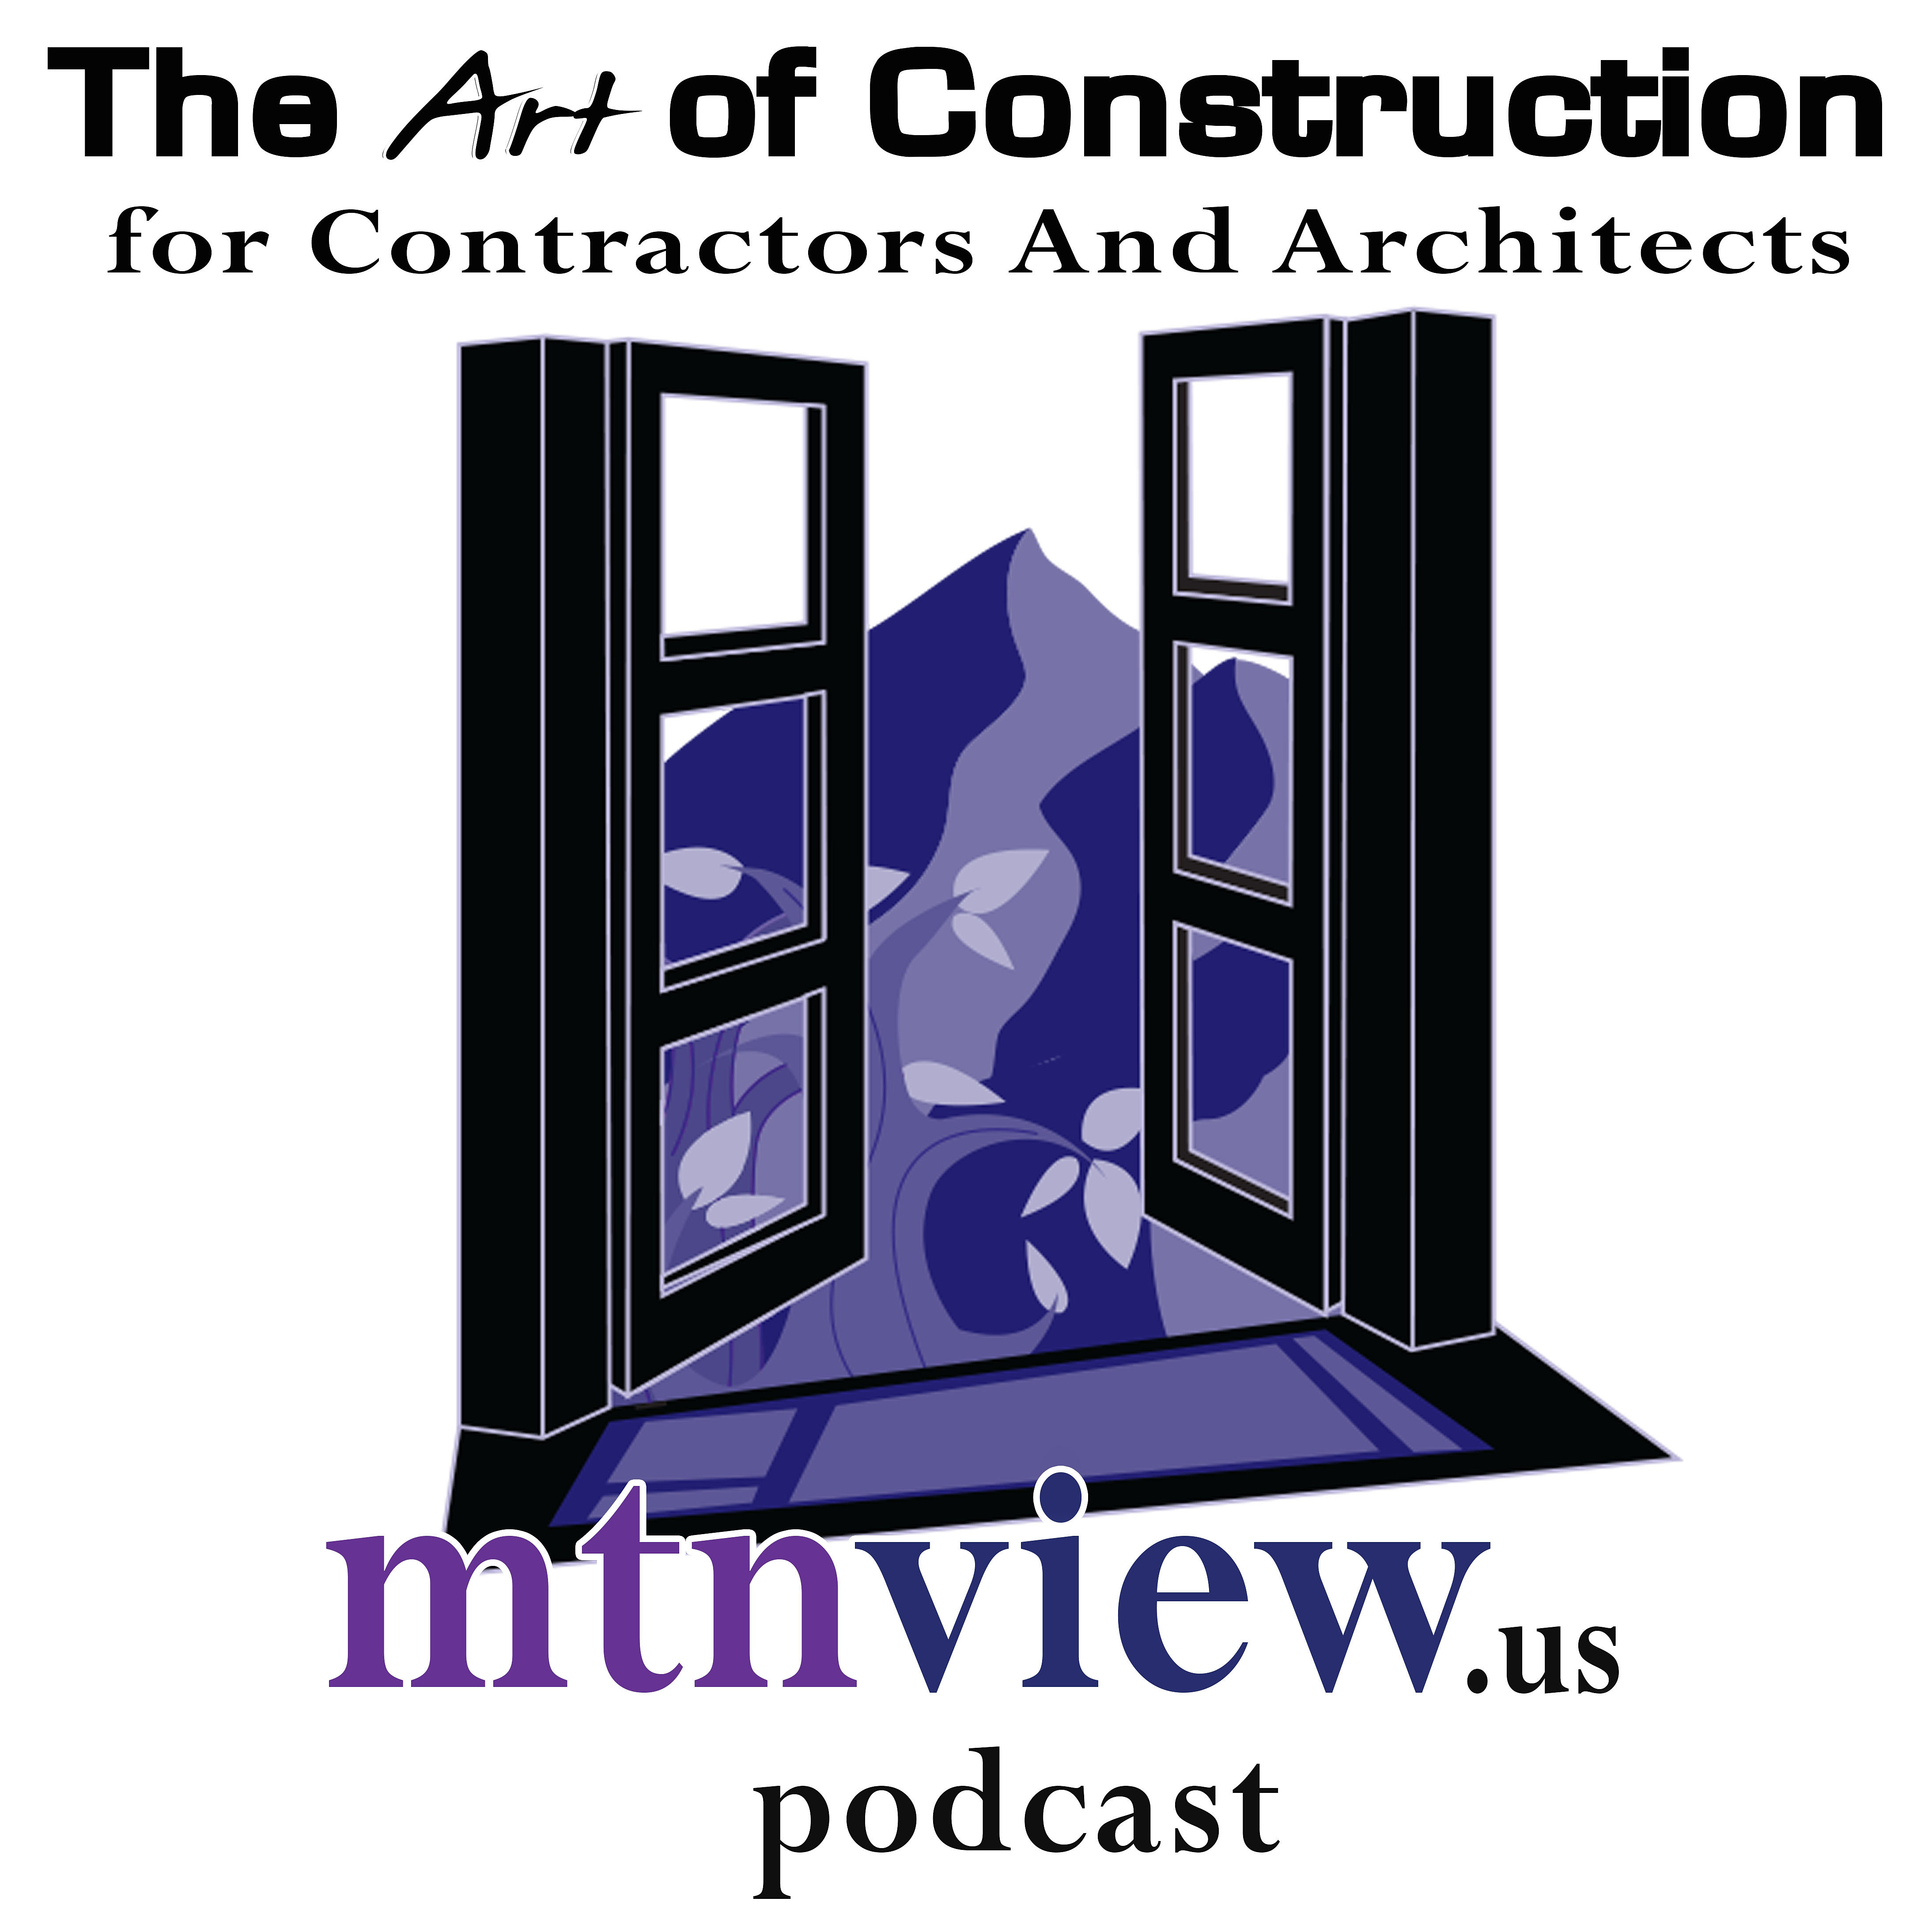 The Art of Construction Podcast logo